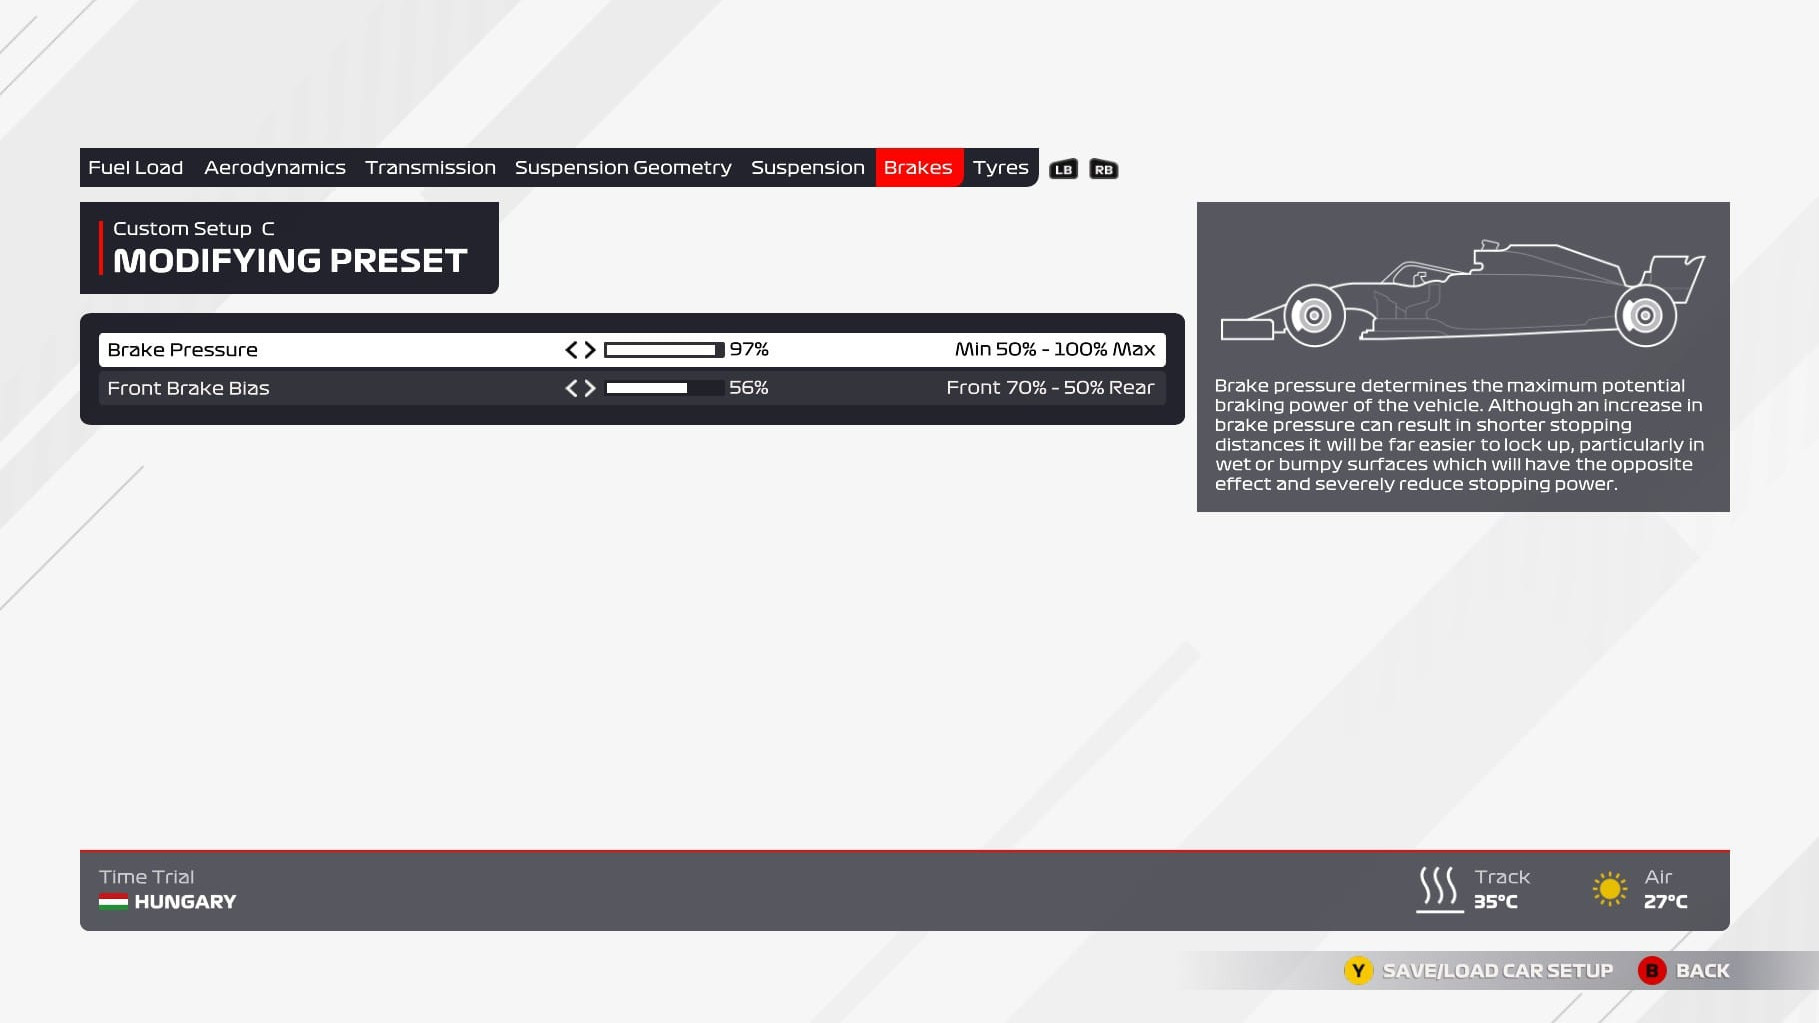 An image of the brakes page of the F1 2021 setup menu.